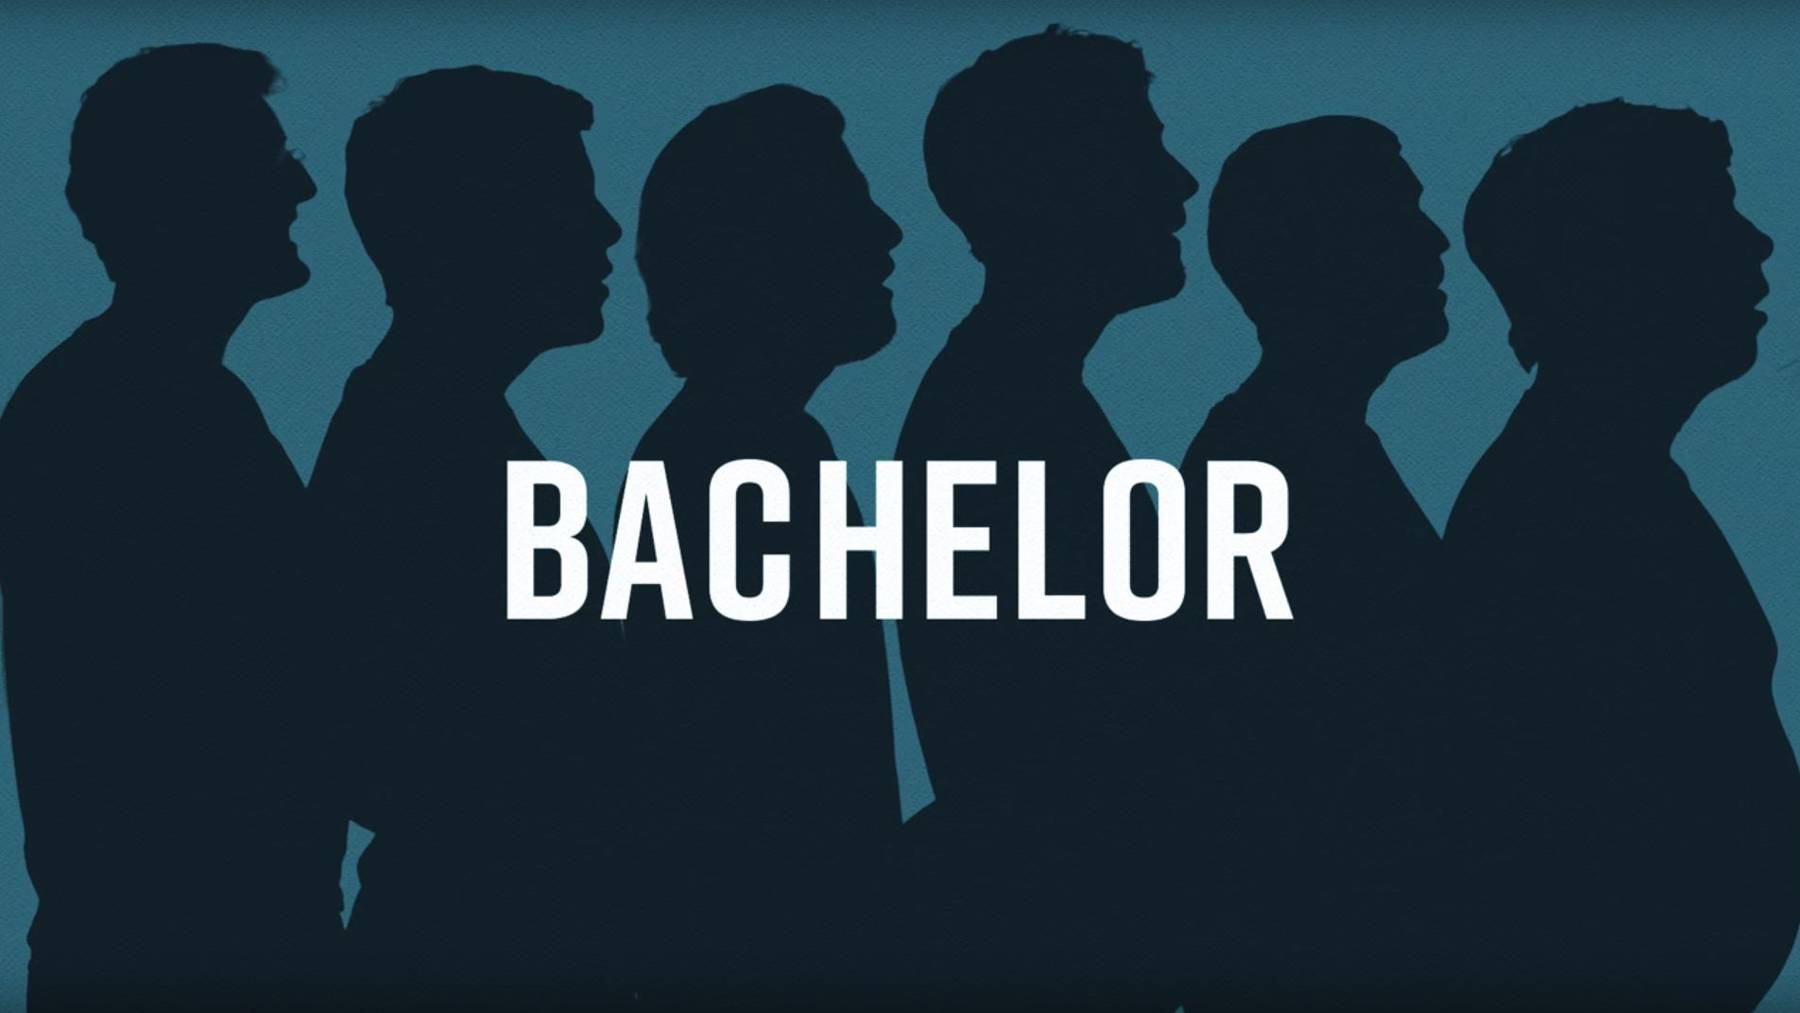 Luzerner Band landet Bachelor-Hit